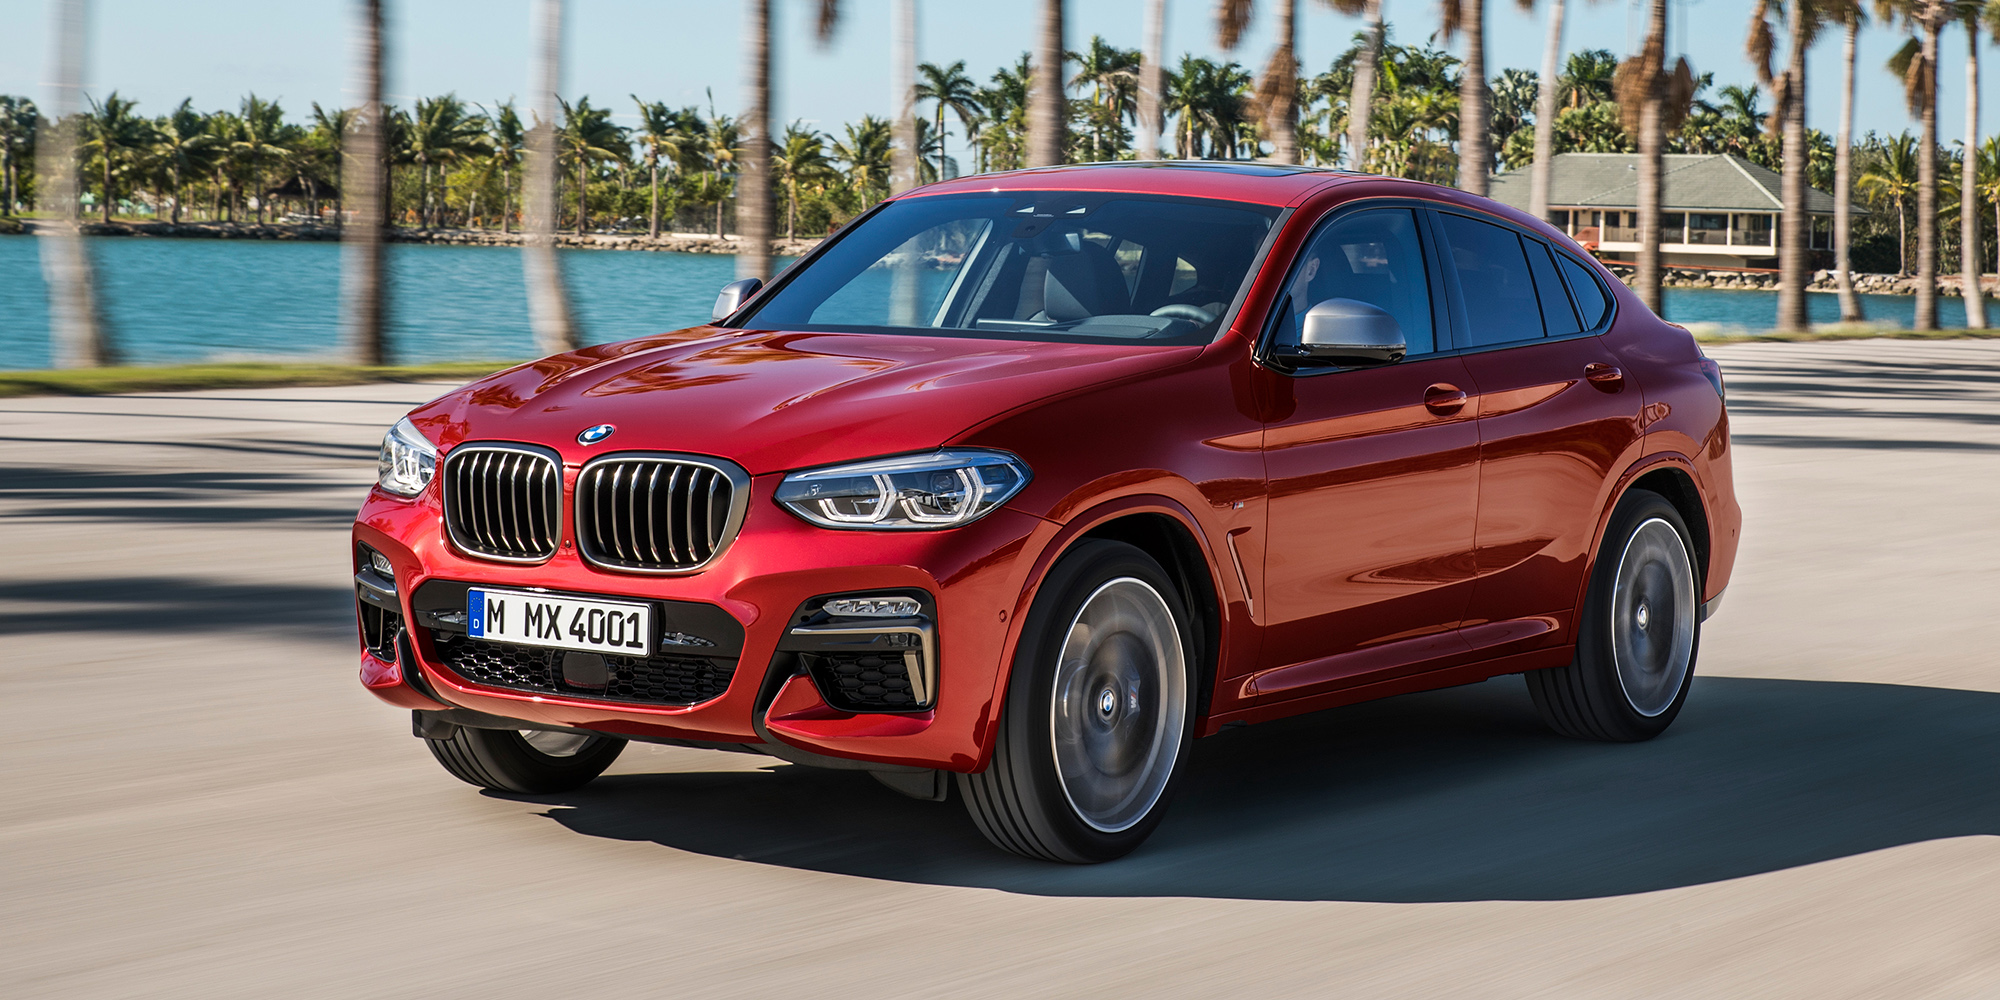 2019 BMW X4 revealed, here in Q3 - Photos